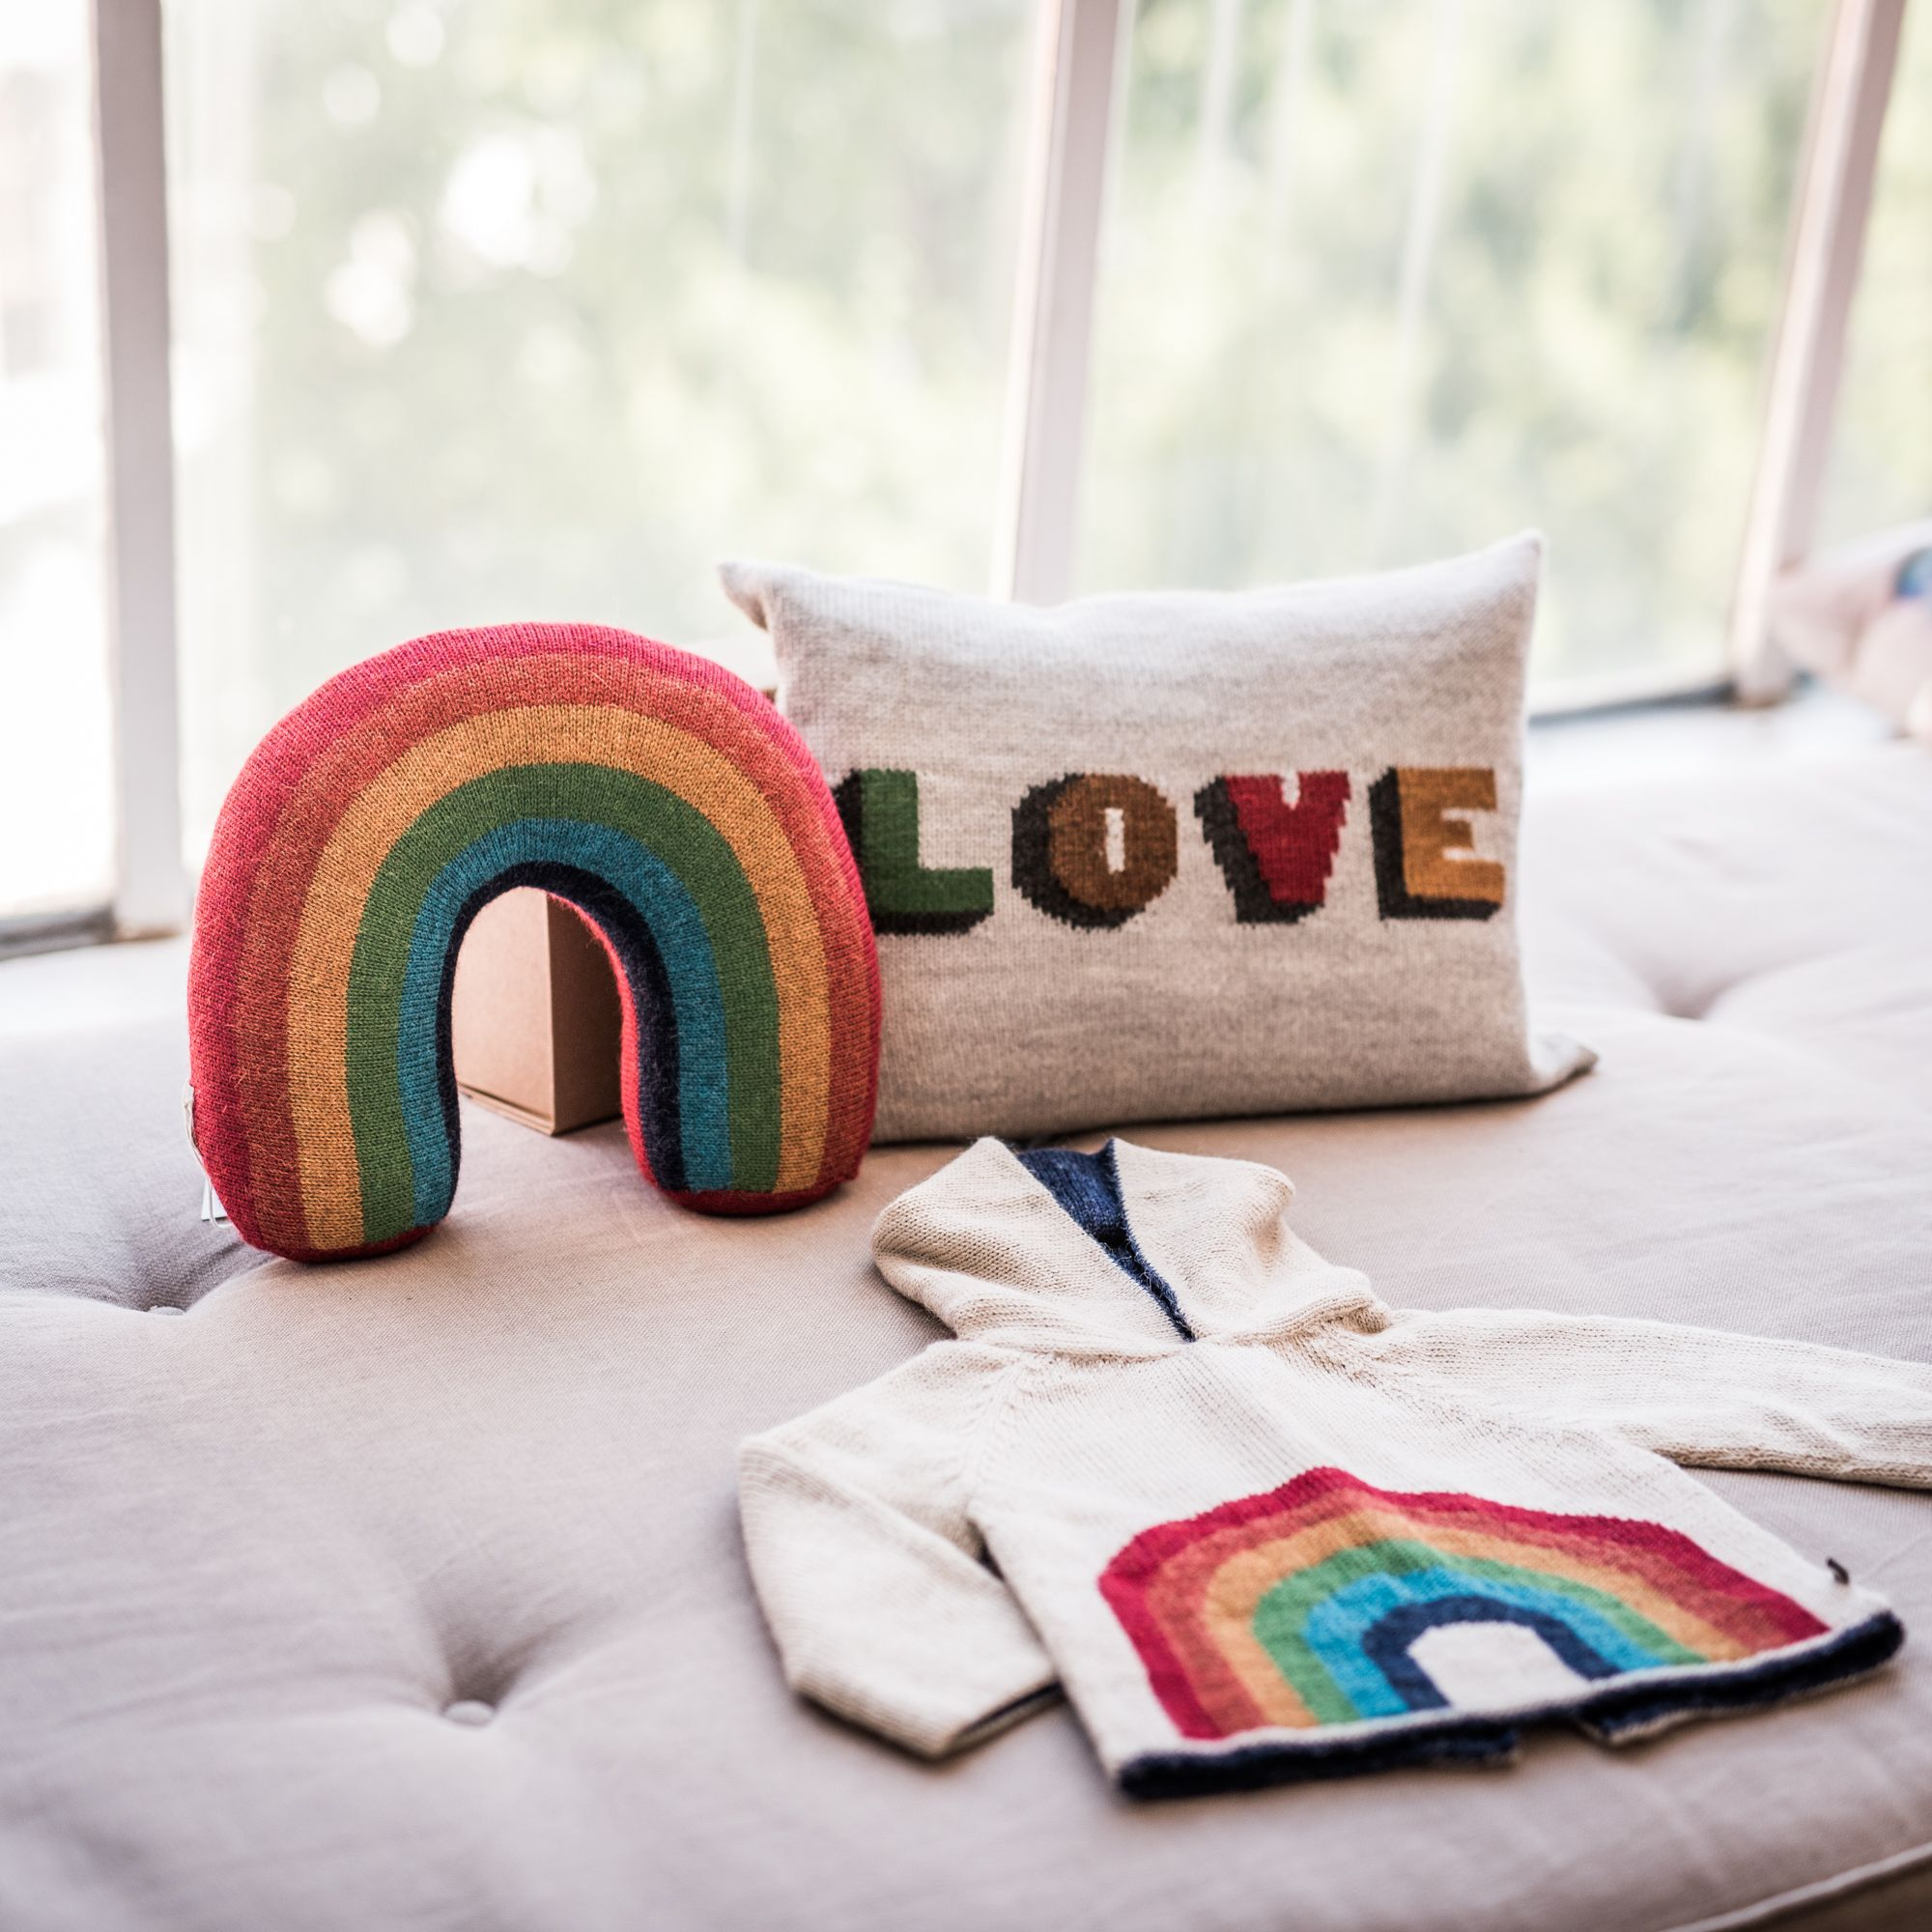 Somewhere over the rainbow... ☺️ The new Oeuf collection is simply amazing! This Autumn/Winter season we'll even have cushions made from 100% baby alpaca. Check it out! #lovewins #oeuf #oeufnyc #littlehipstar #kidsfashion #kidsdecor #kidswear #kidsclothes #rainbow #humanrights #love #cusions #babyalpaca #cozy #aw16 #beautiful #instakids #kidsstyle #kinderkleidung #kidsshopping